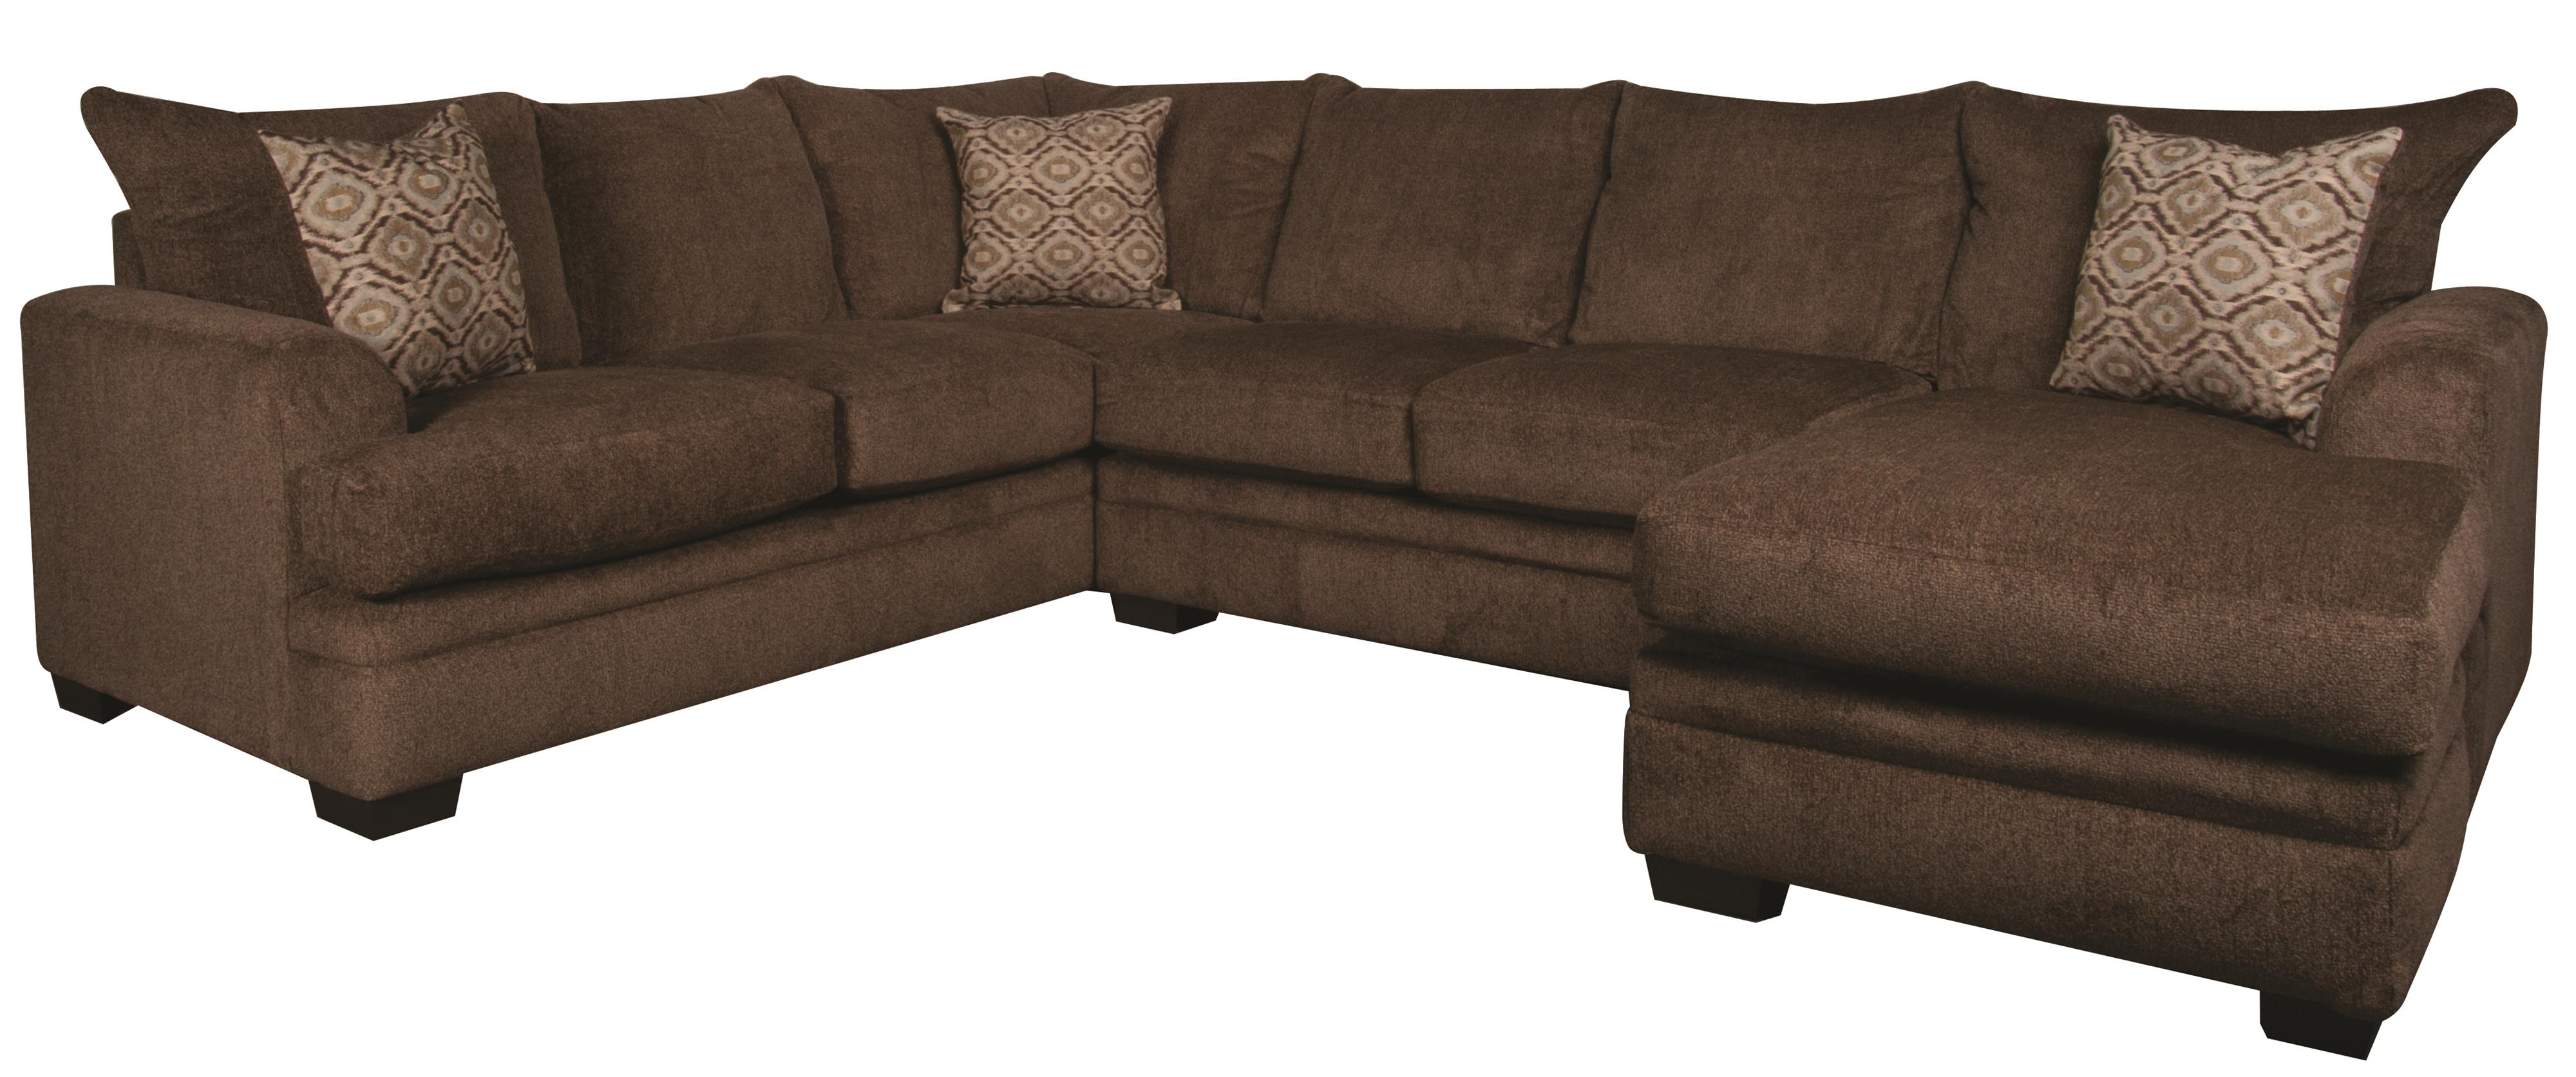 Morris Home Furnishings Walter Walter 2-Piece Sectional - Item Number: 134883947